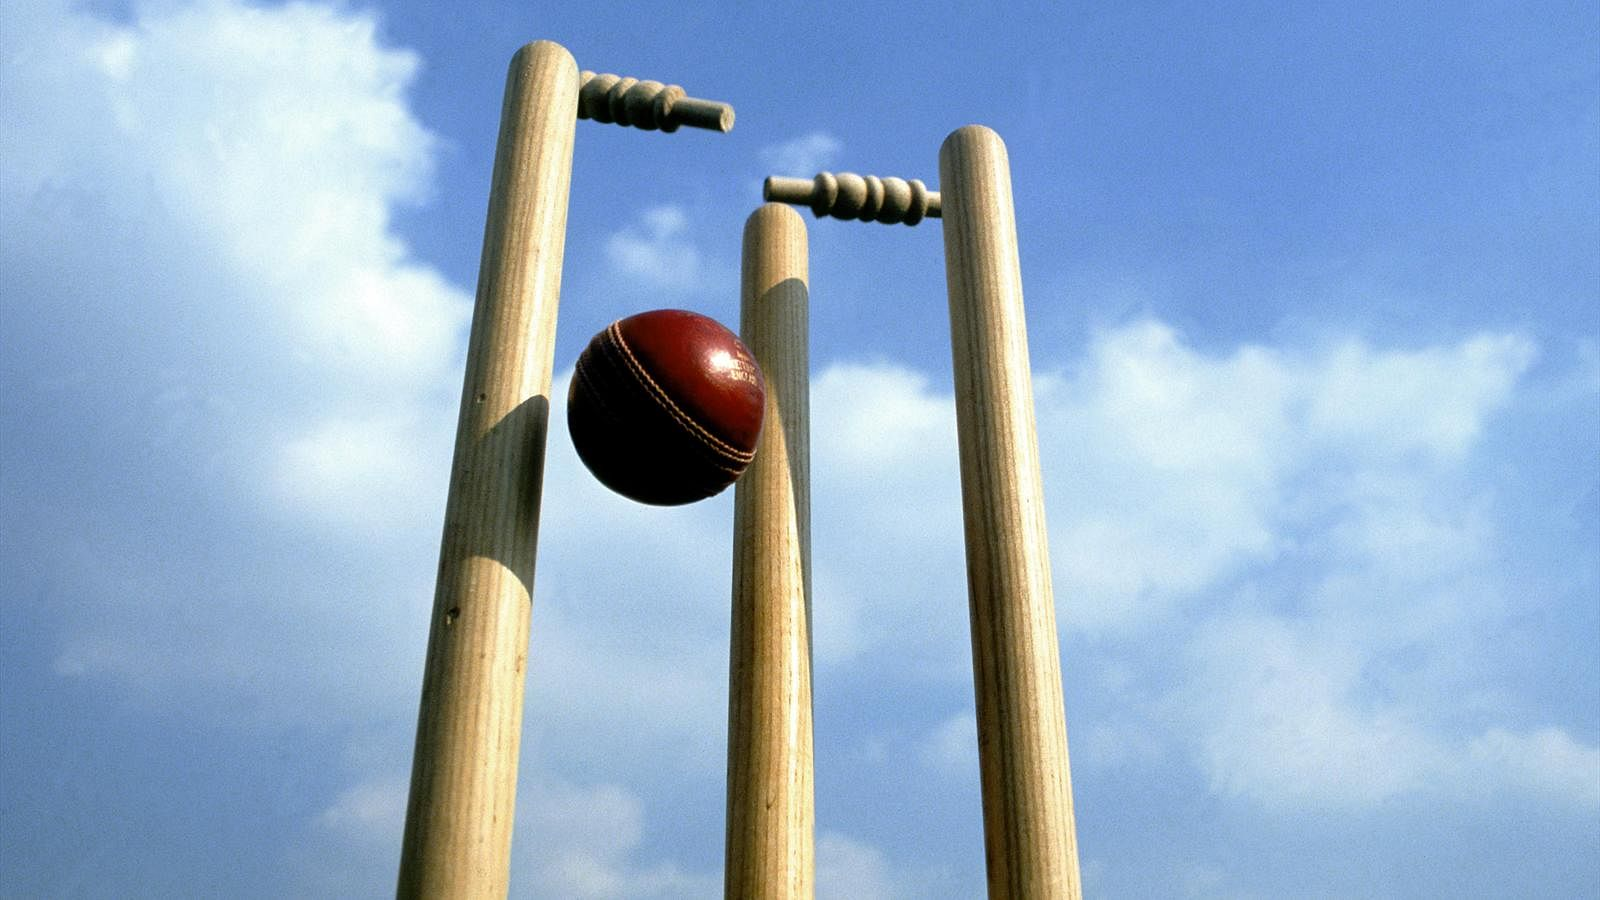 Interview with cricket wickets